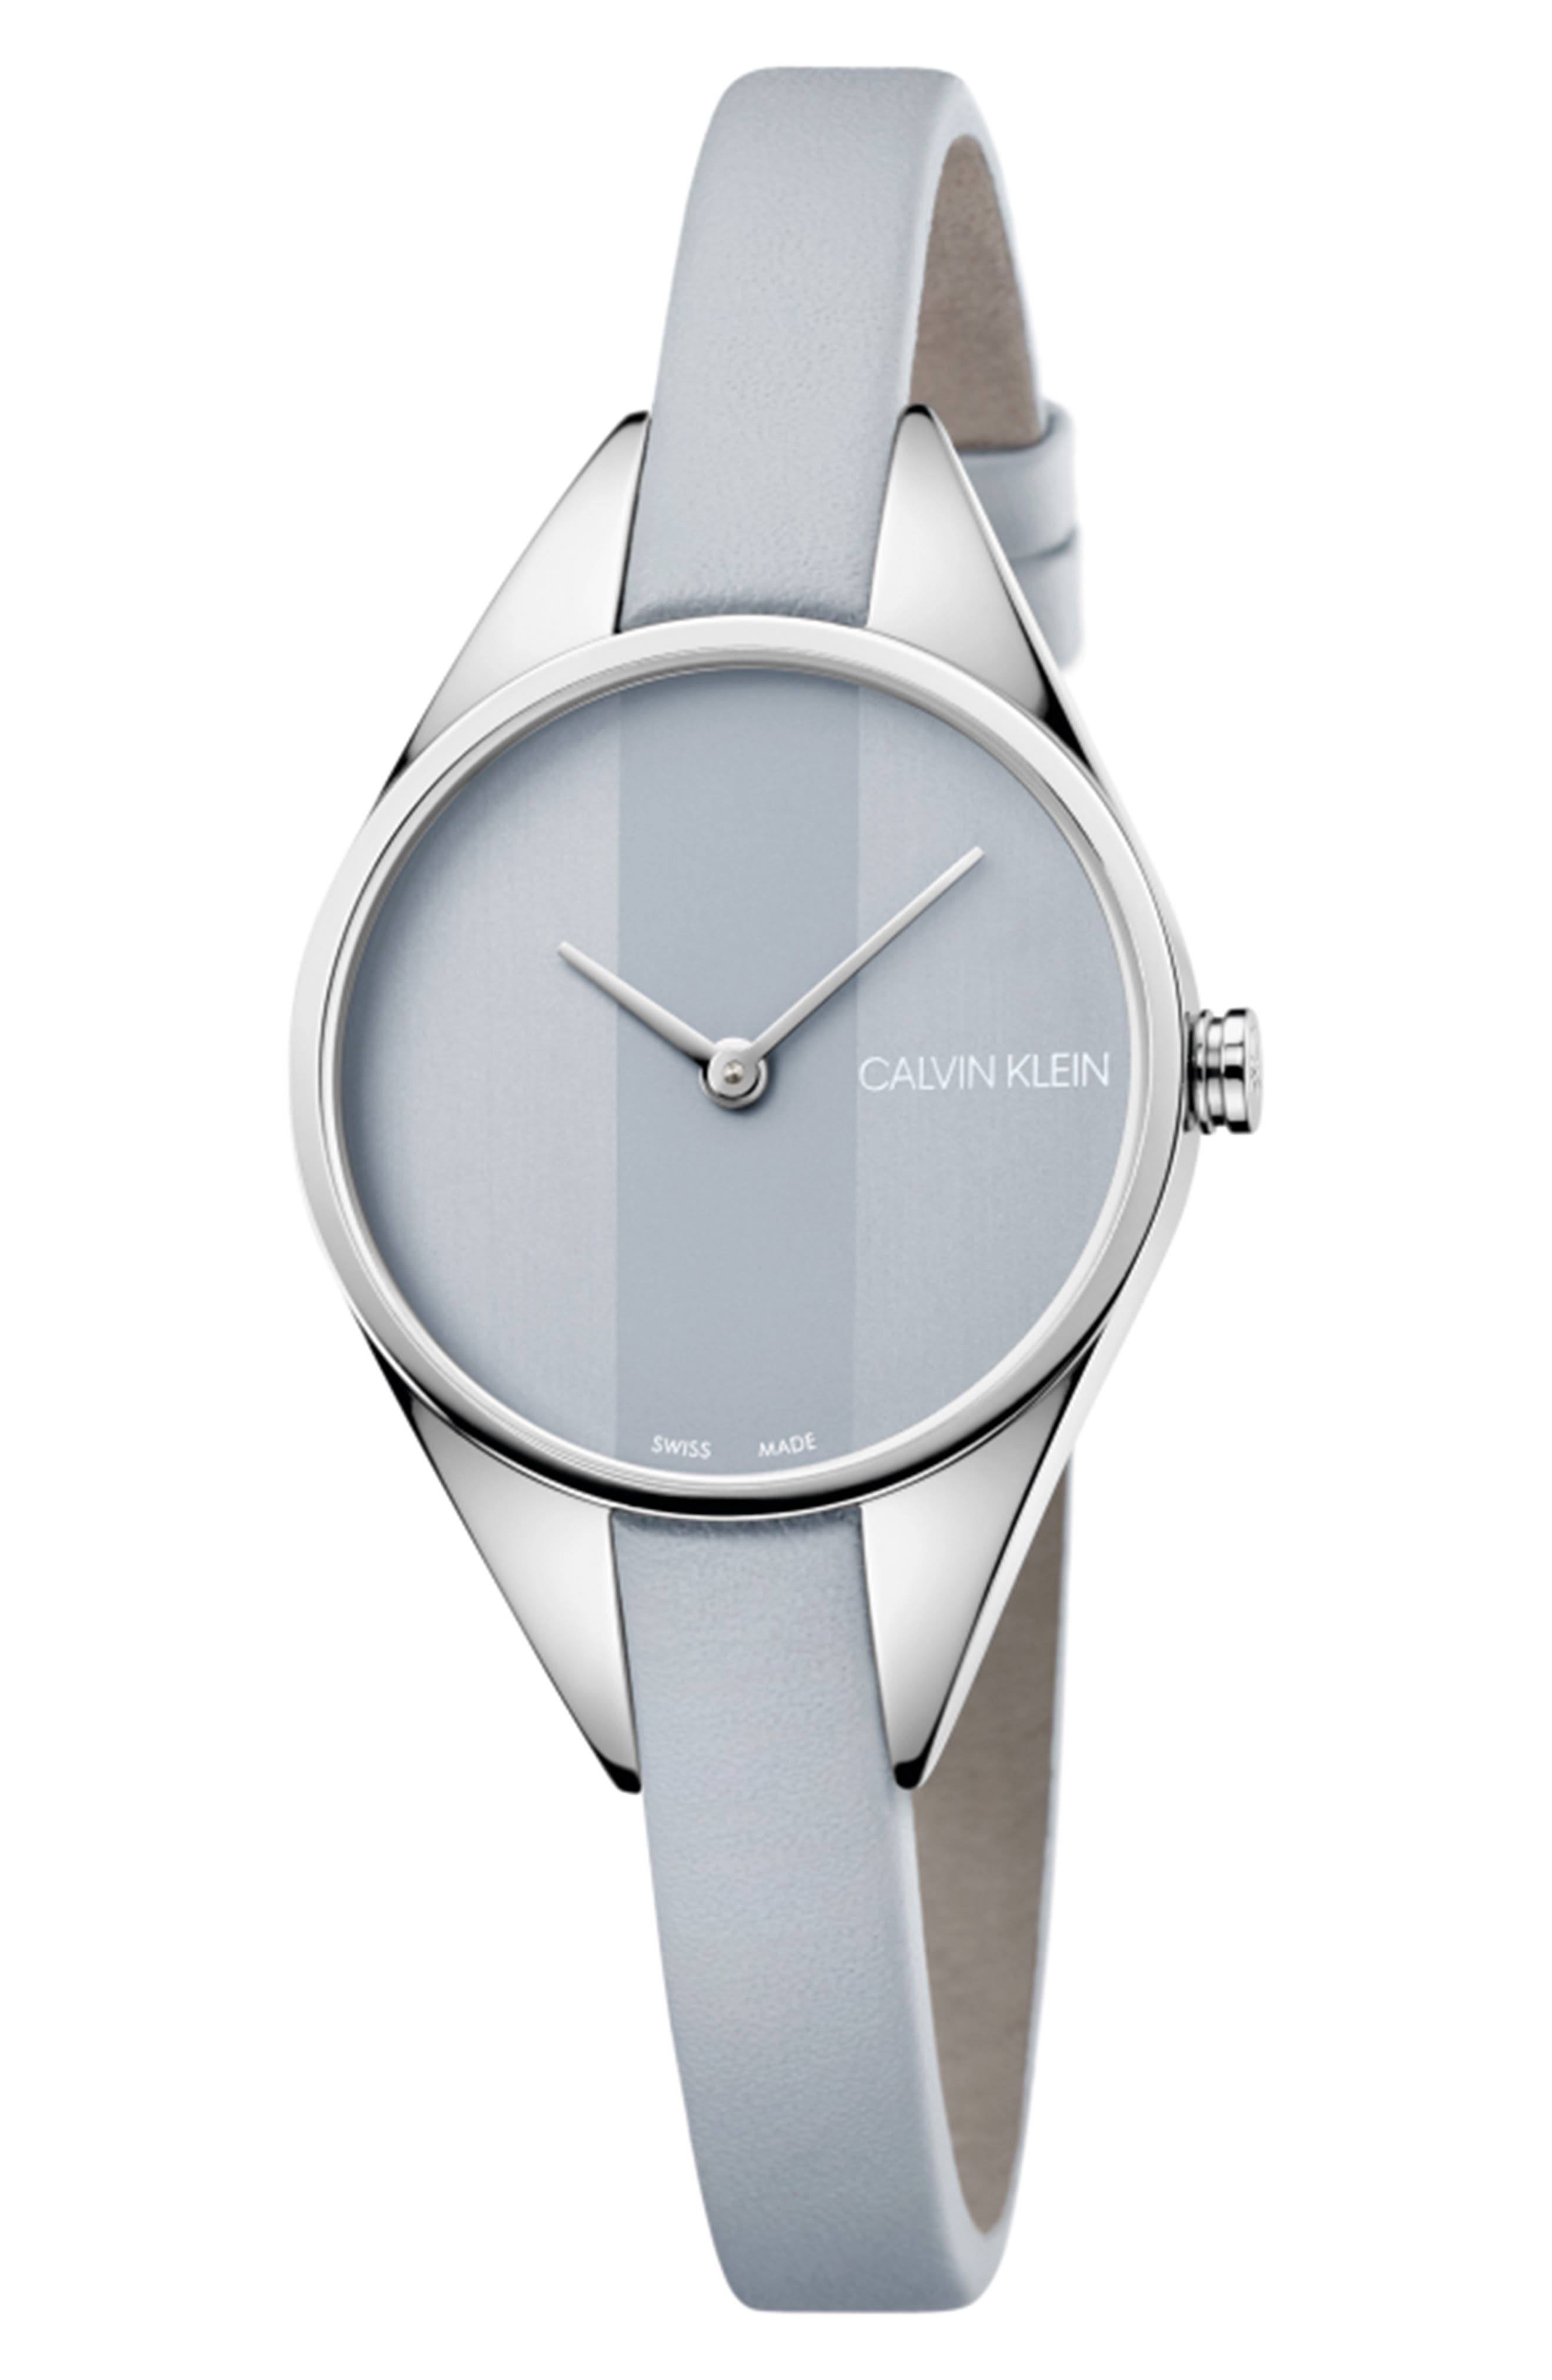 CALVIN KLEIN Achieve Rebel Leather Band Watch, 29mm, Main, color, GREY/ SILVER